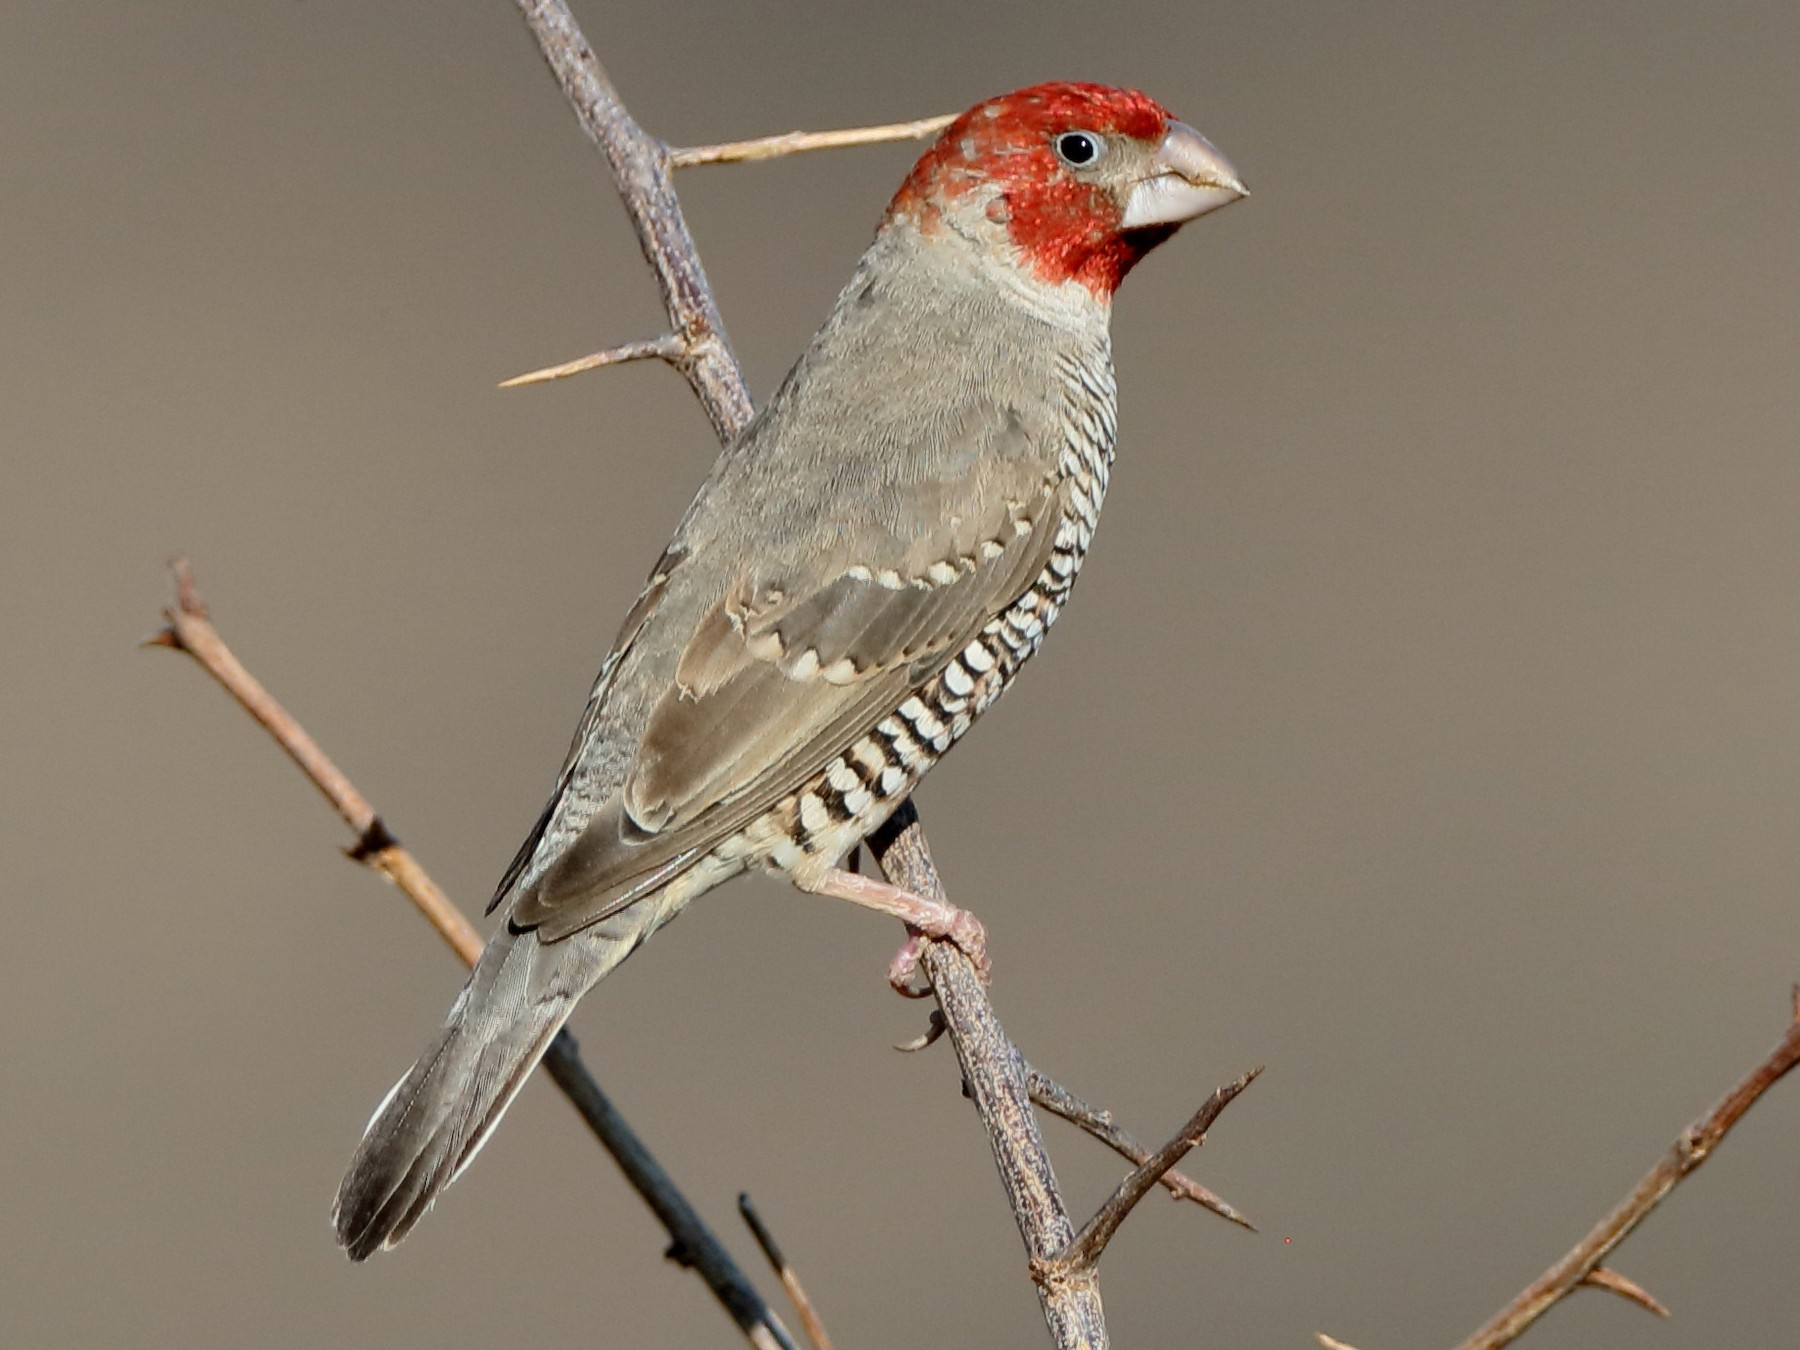 Red-headed Finch - Holger Teichmann